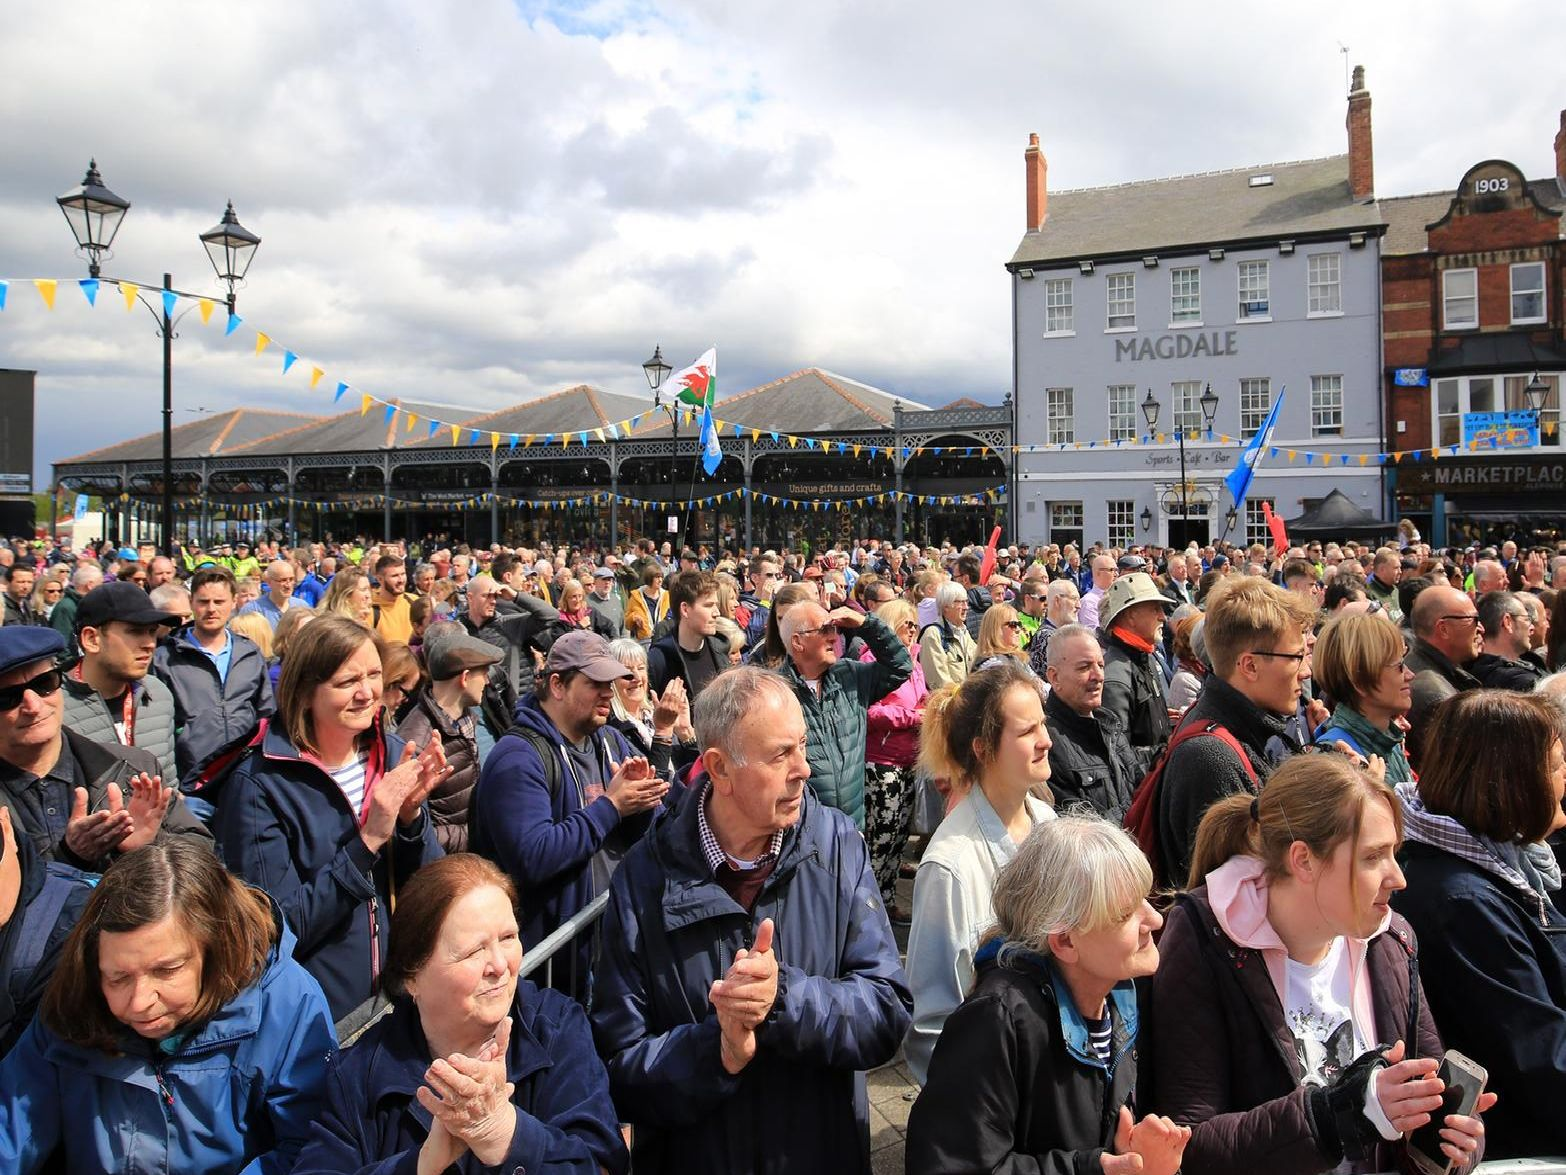 Crowds in Doncaster.